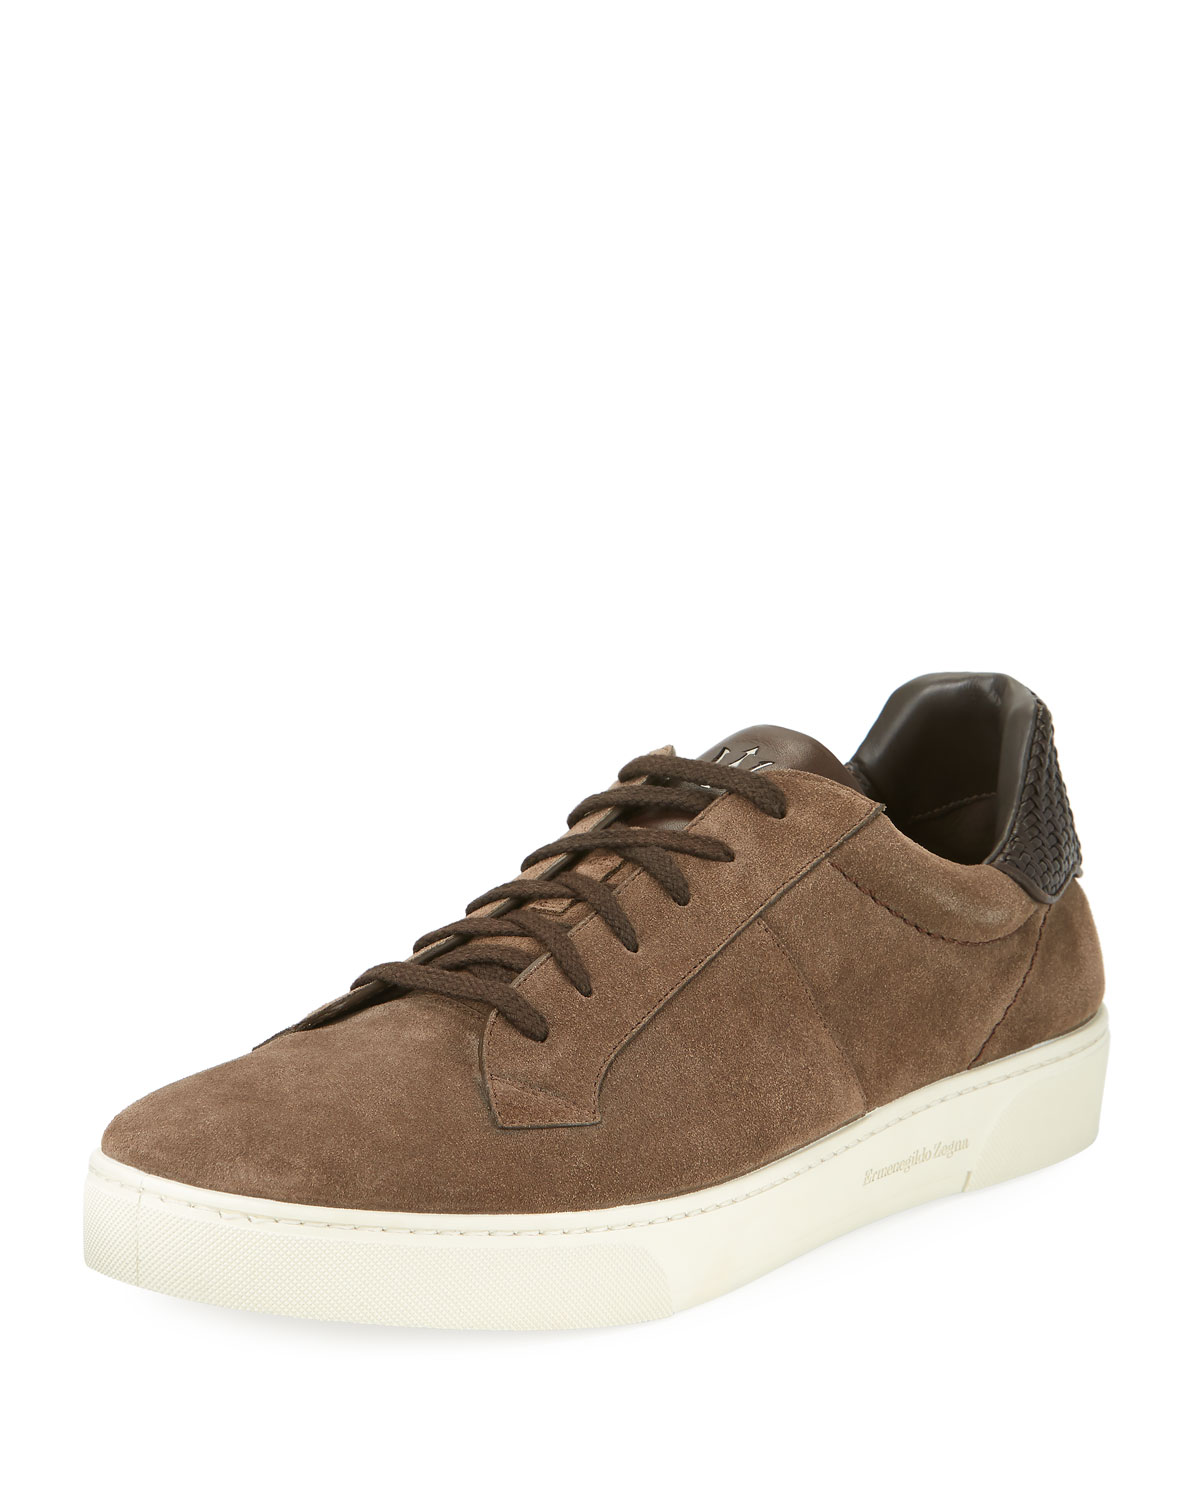 9a422f9b Vulcanizzato Men's Suede Low-Top Sneakers with Maserati Embossed Logo